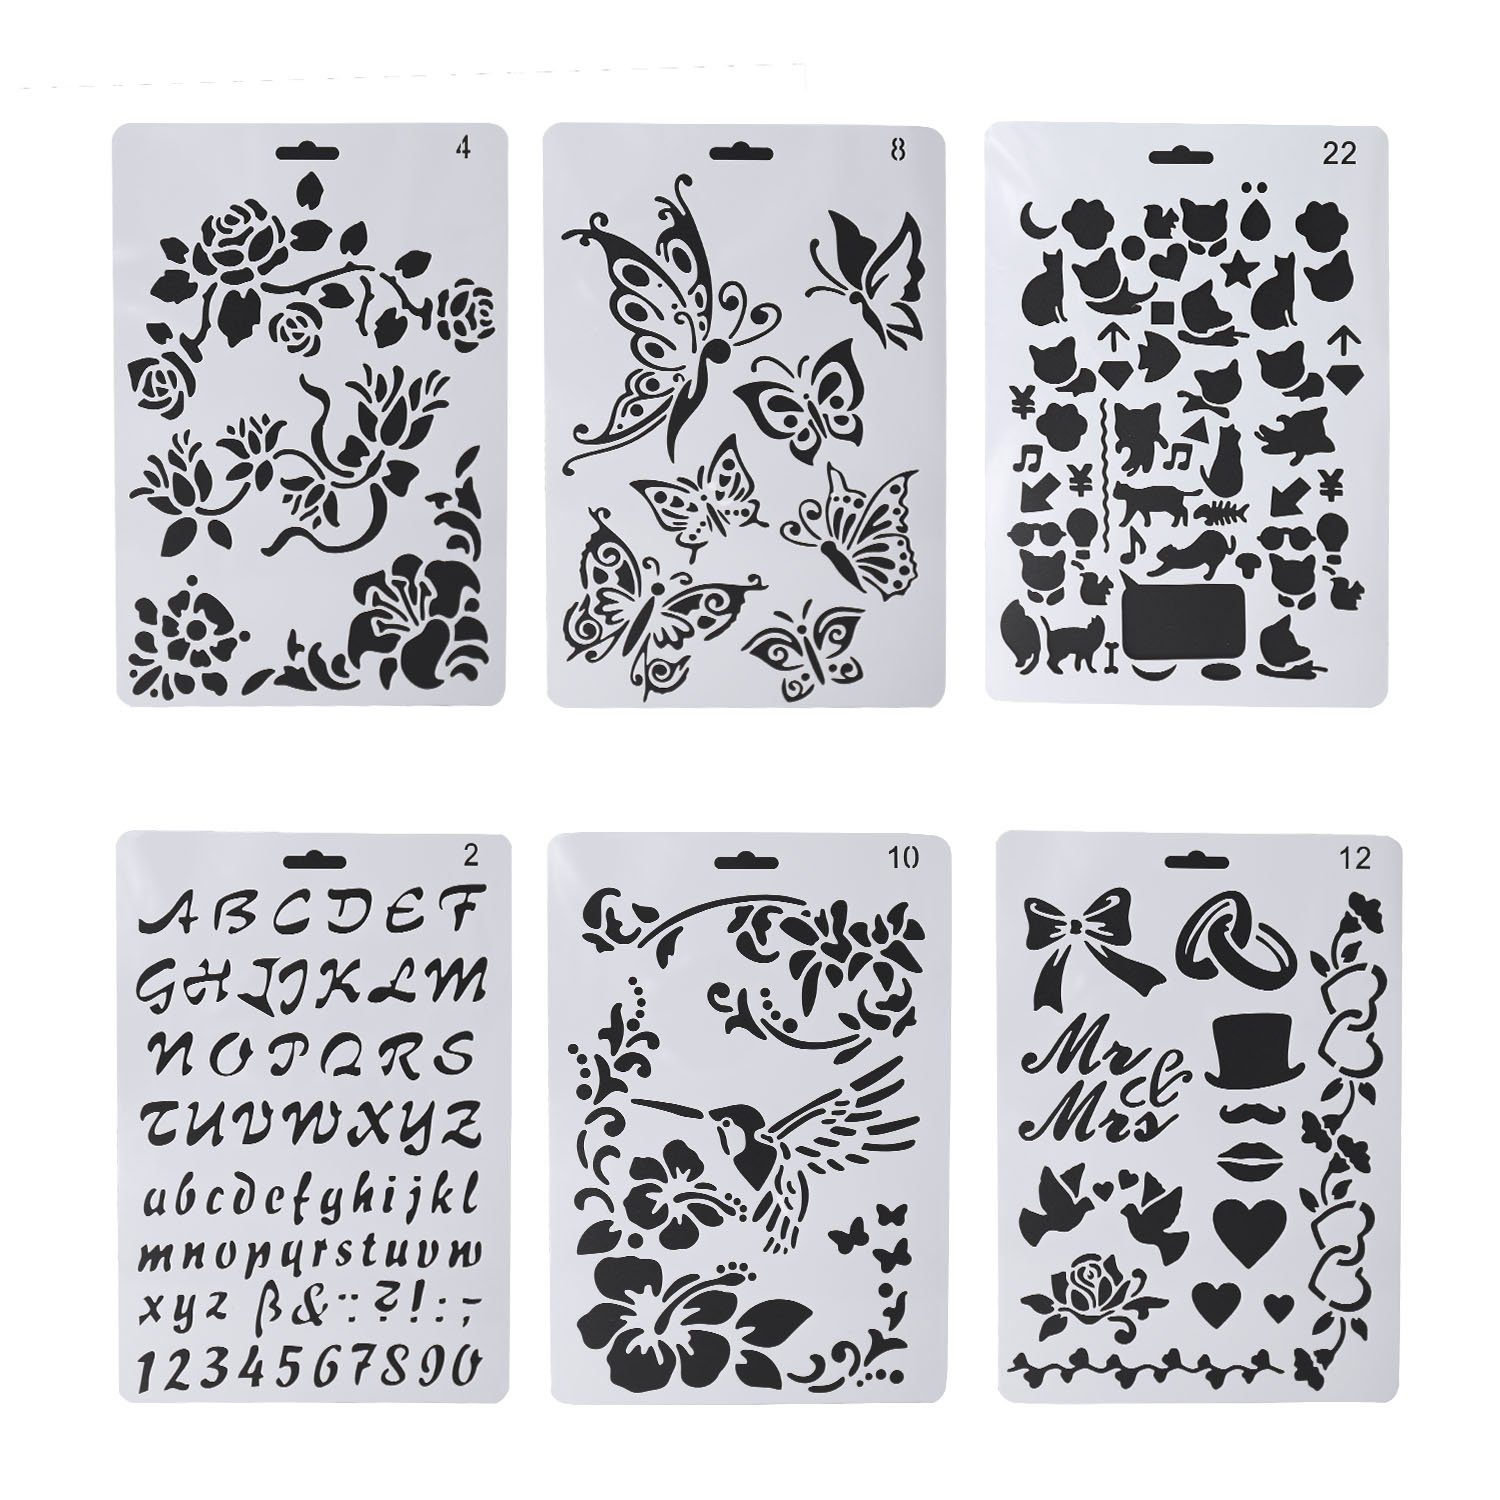 6 PCS Wood Burning Stencils, Pyrography Plastic Templates Set for Wood Burning/Carving with Letters Number Alphabet & Various Pattern + Carrying Bag